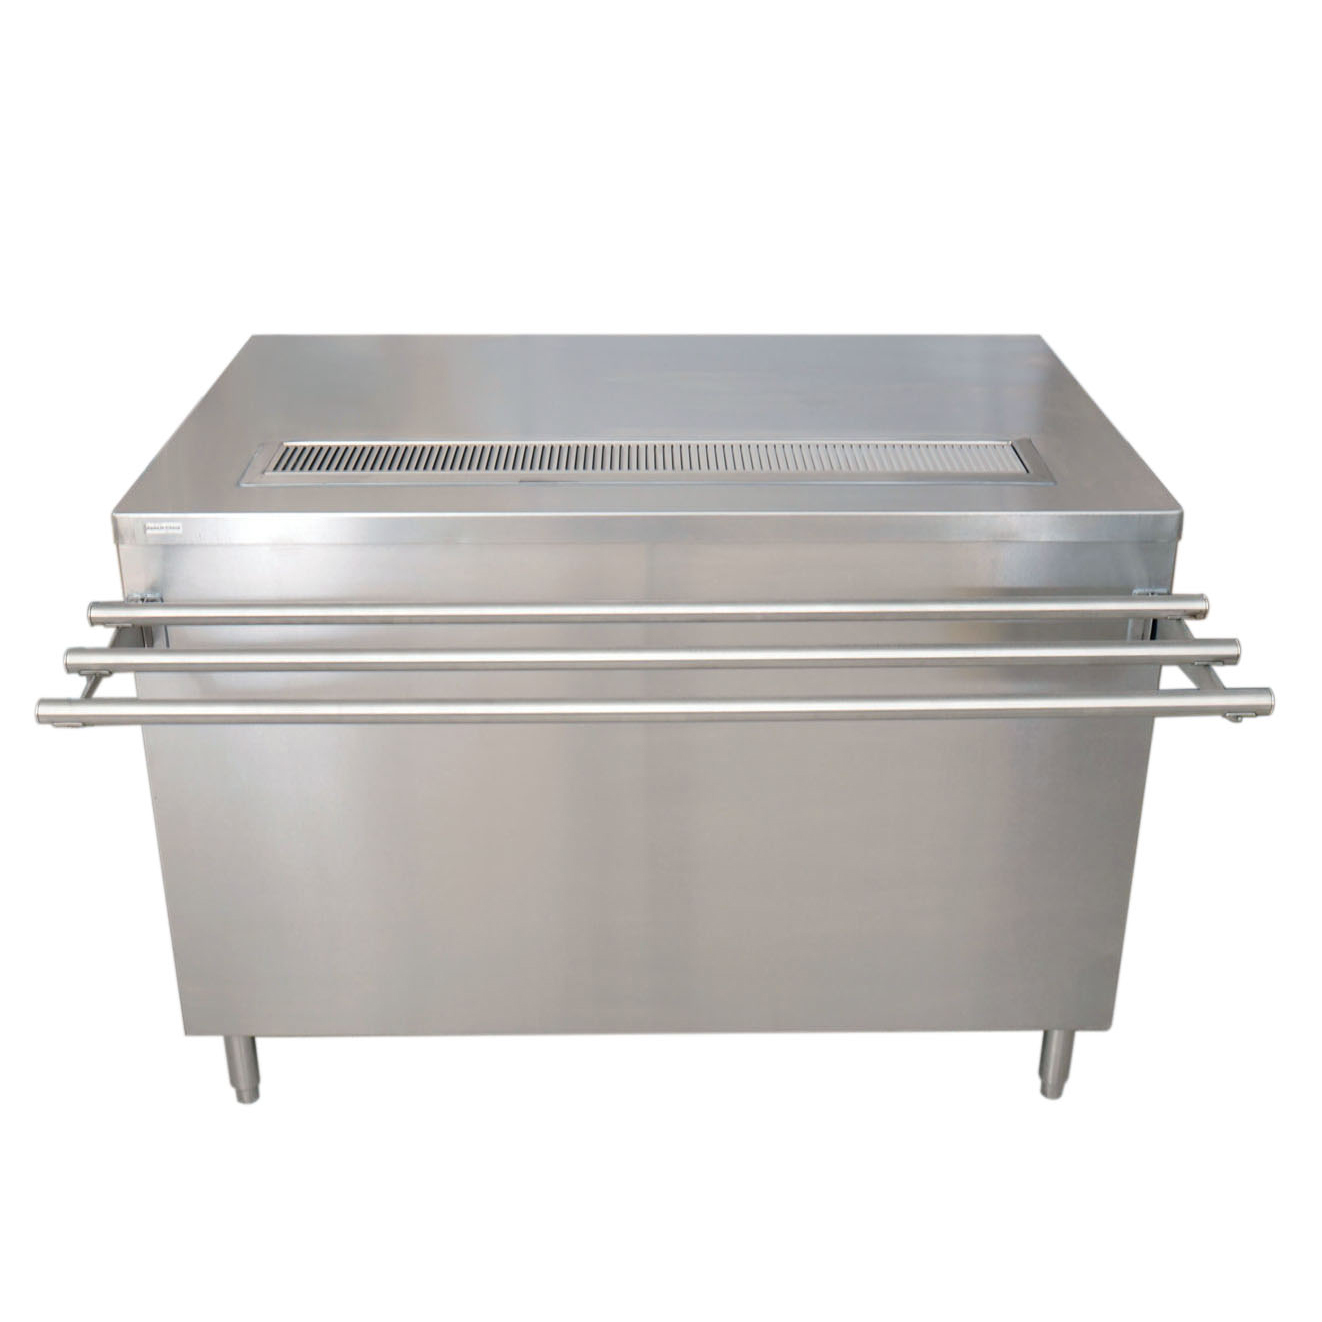 BK Resources US-3072C-HL serving counter, beverage